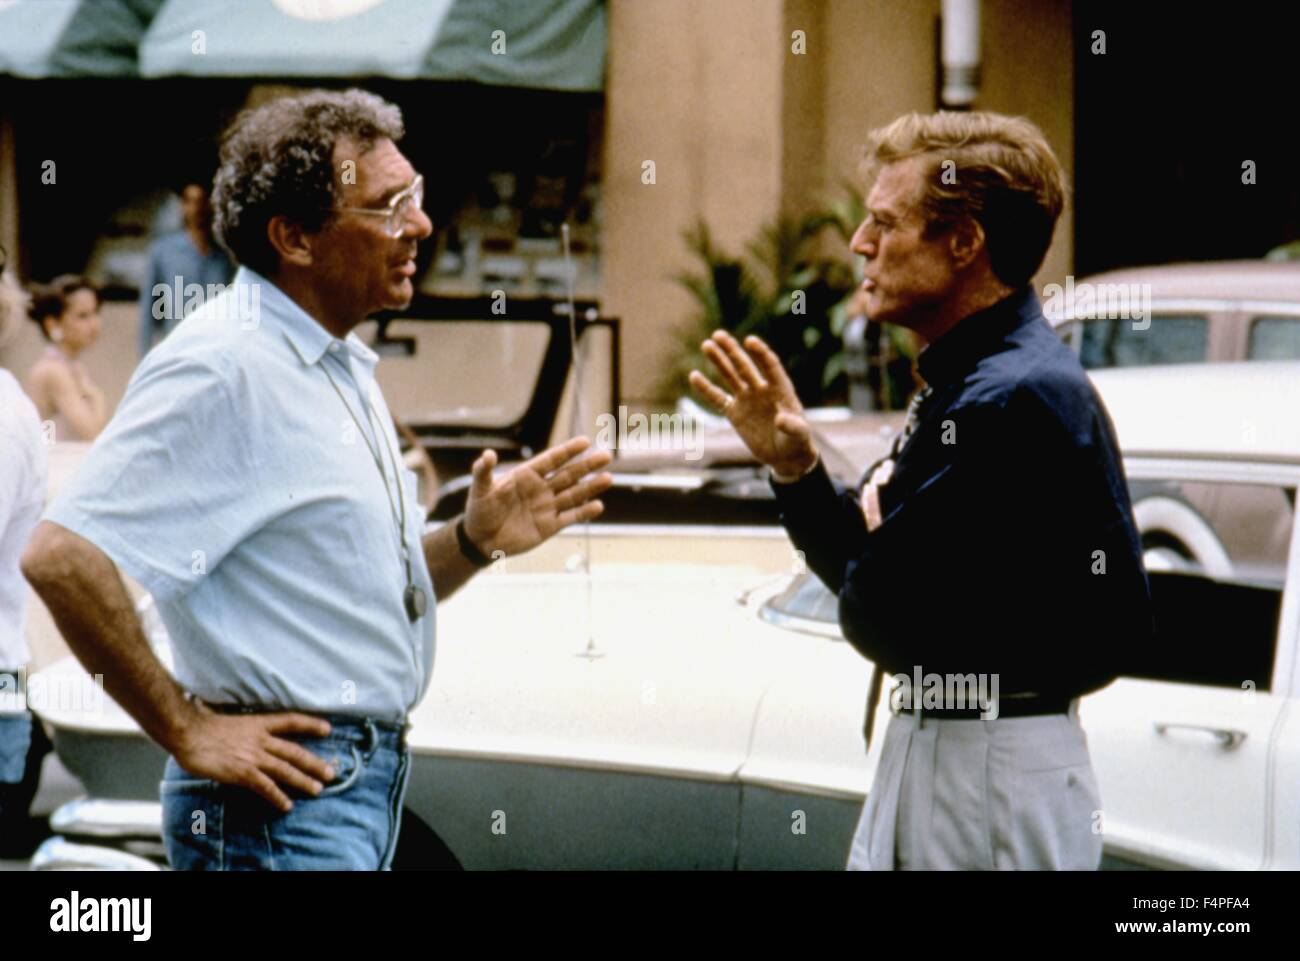 On the set, Sydney Pollack directs Robert Redford / Havana / 1990 directed by par Sydney Pollack - Stock Image